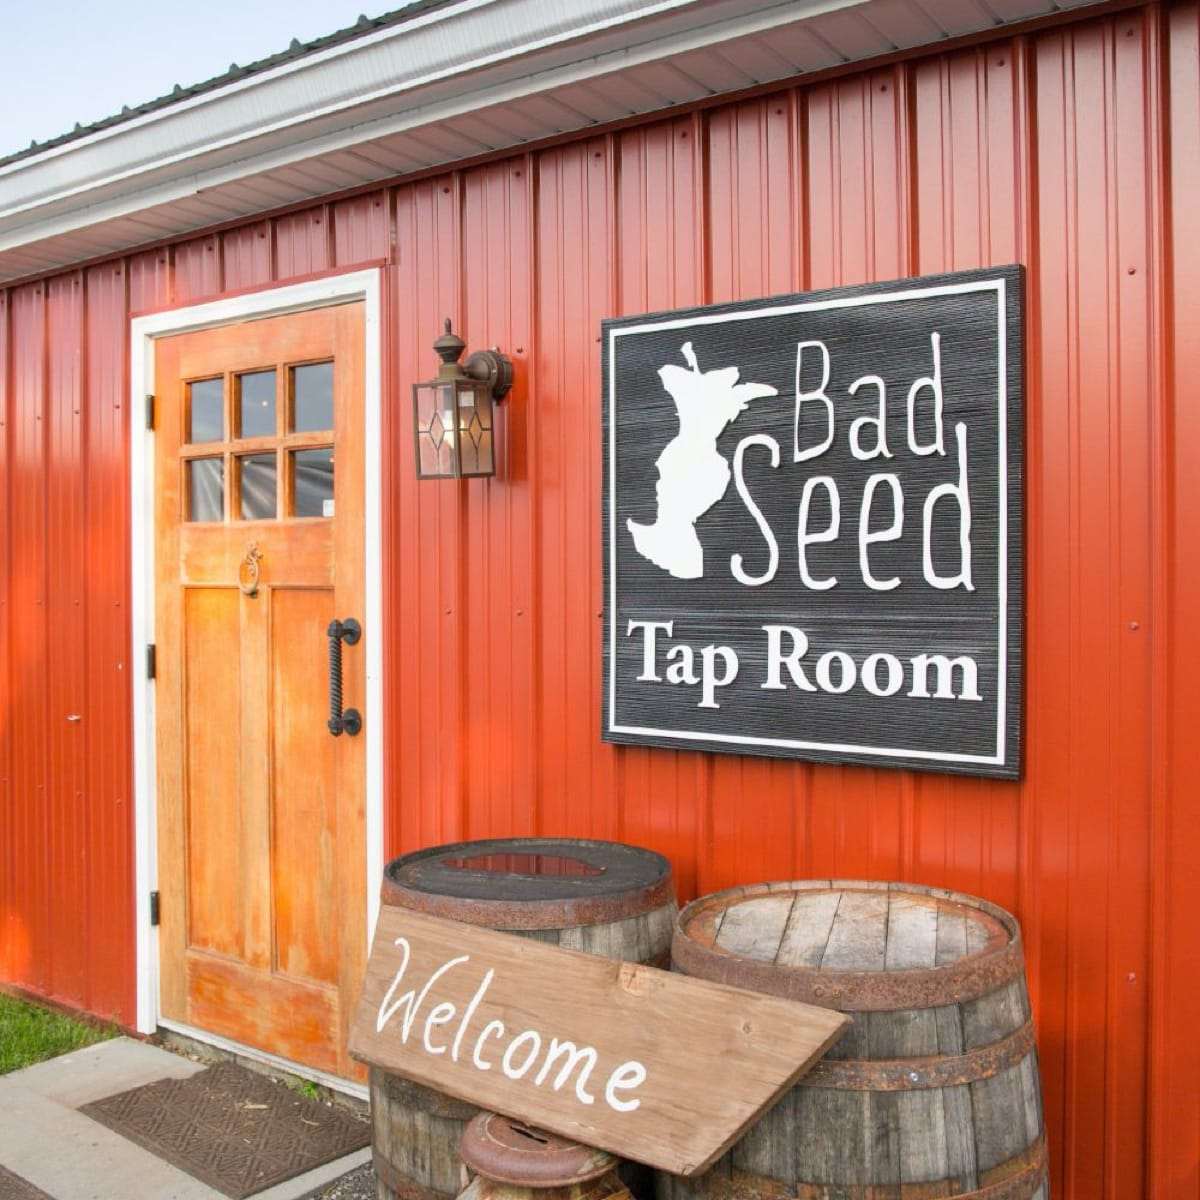 A wooden door and red barn siding with a welcome sign showing the entrance to the Bad Seed Tap Room.